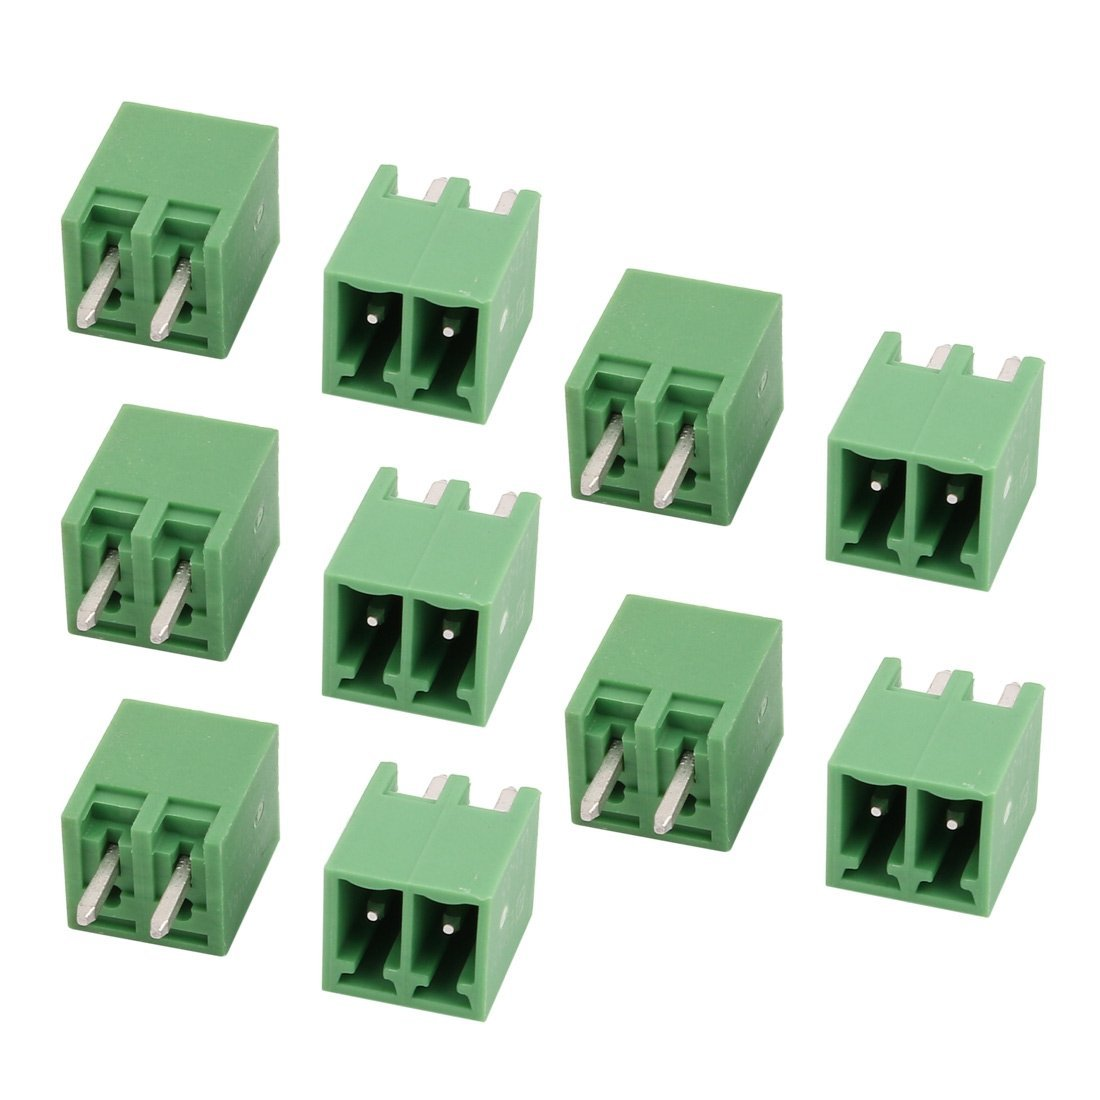 uxcell 10Pcs AC 300V 8A 3.5mm Pitch 2P Terminal Block Wire Connection for PCB Mounting Green